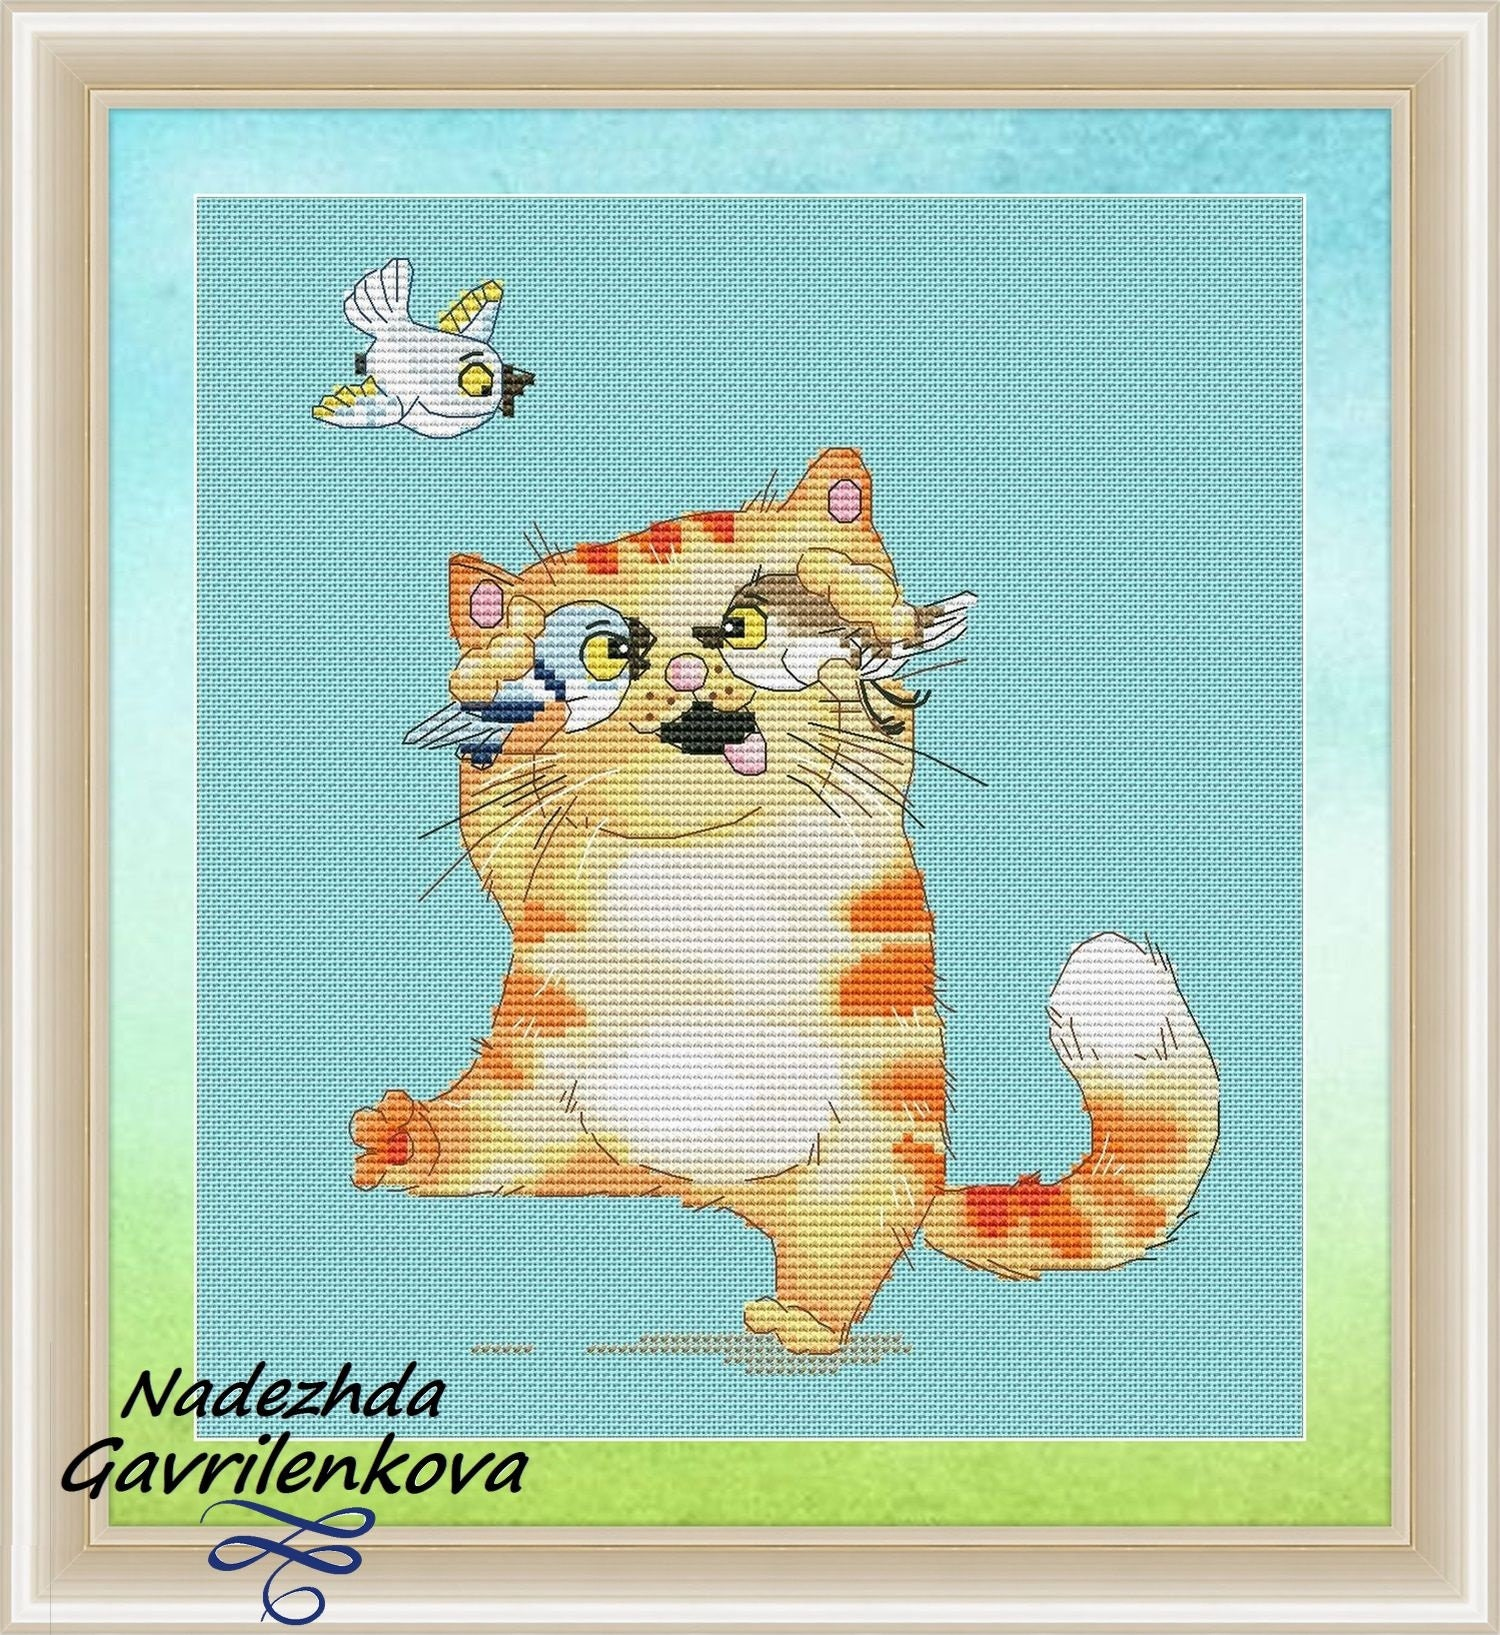 How To Make Your Own Cross Stitch Pattern Awesome Inspiration